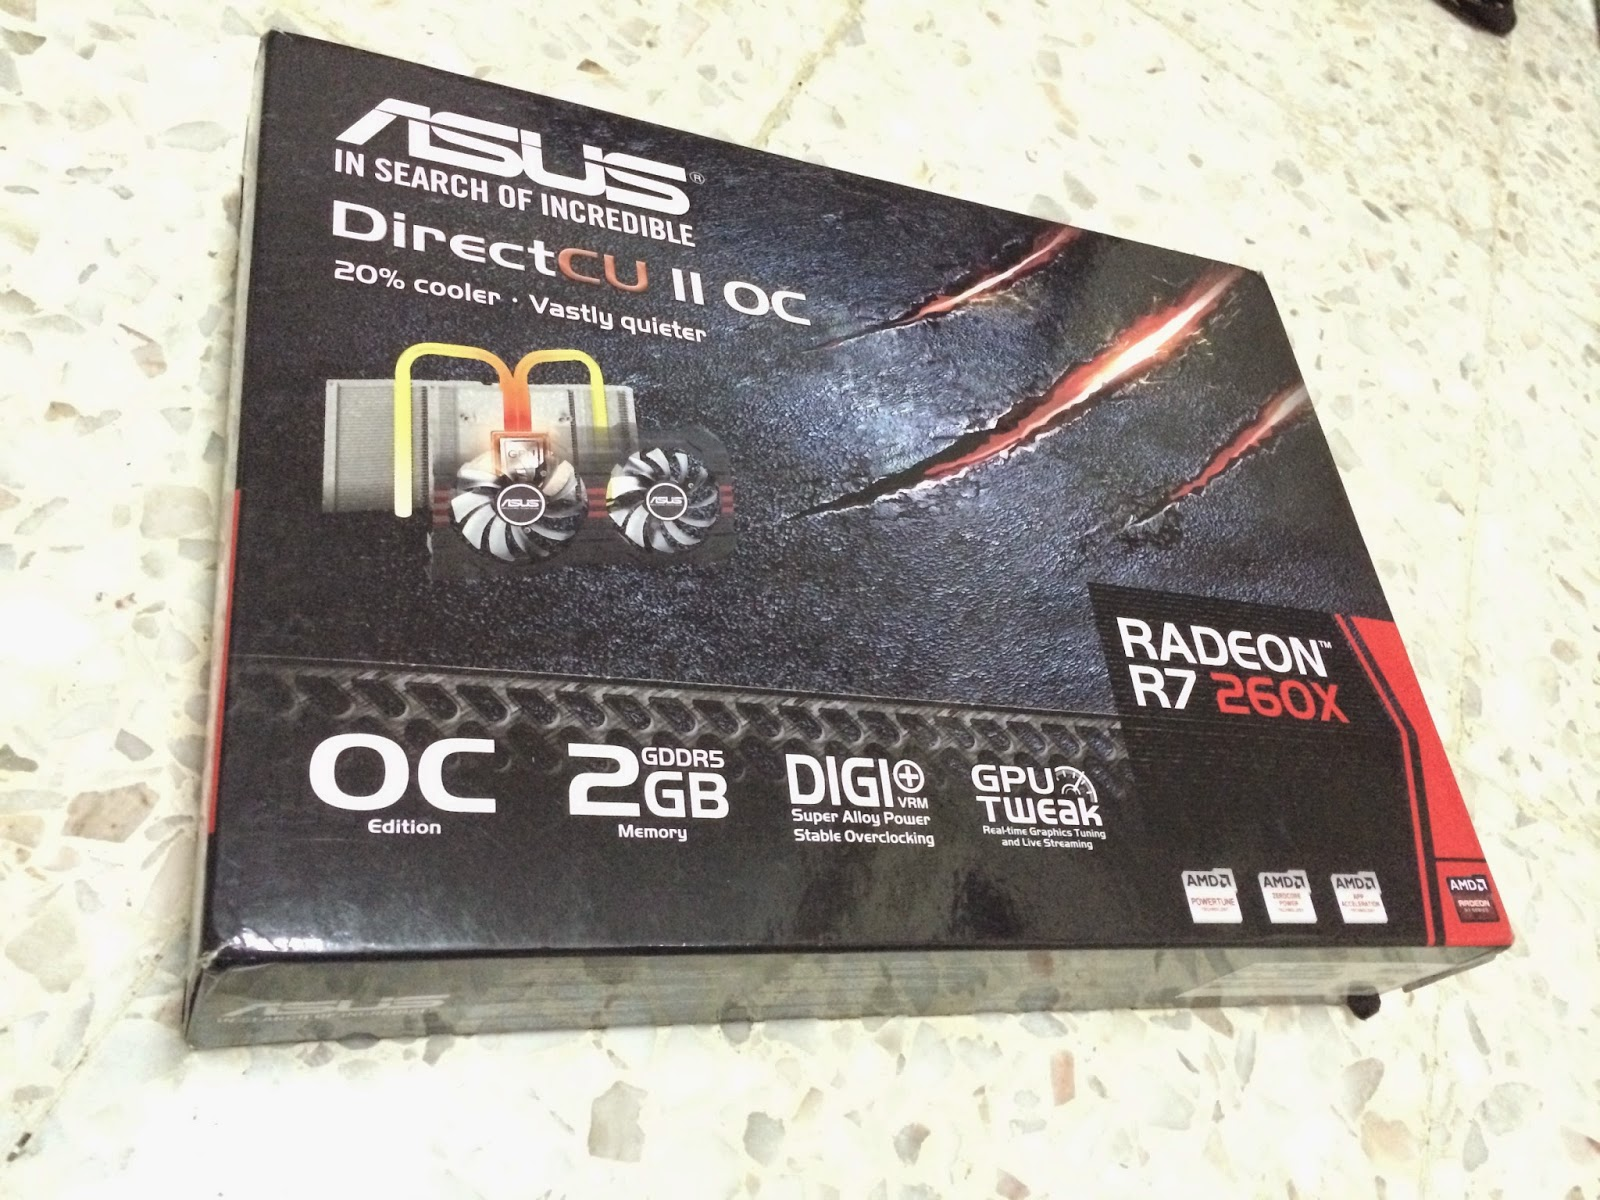 ASUS R7 260X DirectCU II Performance Review 31